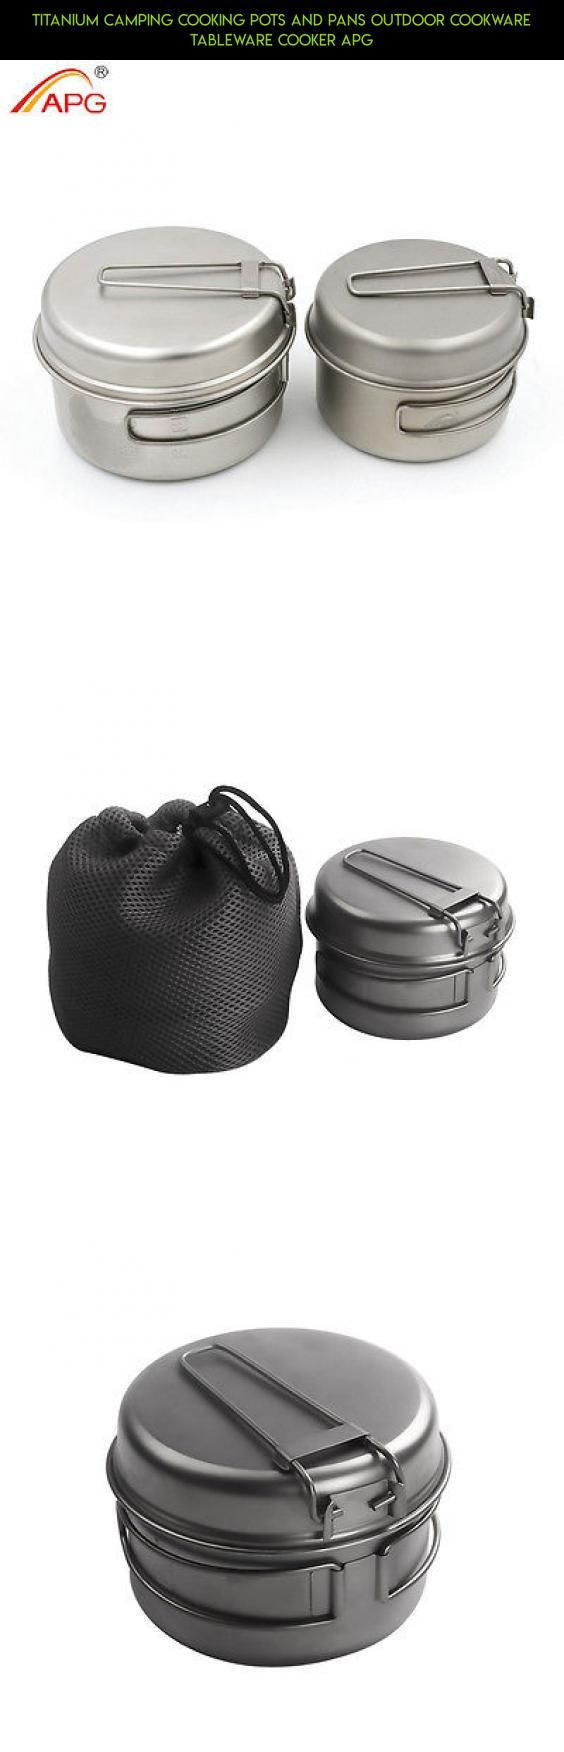 Titanium Camping Cooking Pots and Pans Outdoor Cookware Tableware Cooker APG #tech #parts #fpv #technology #products #plans #cooking #gadgets #outdoor #racing #drone #kit #kit #camera #shopping